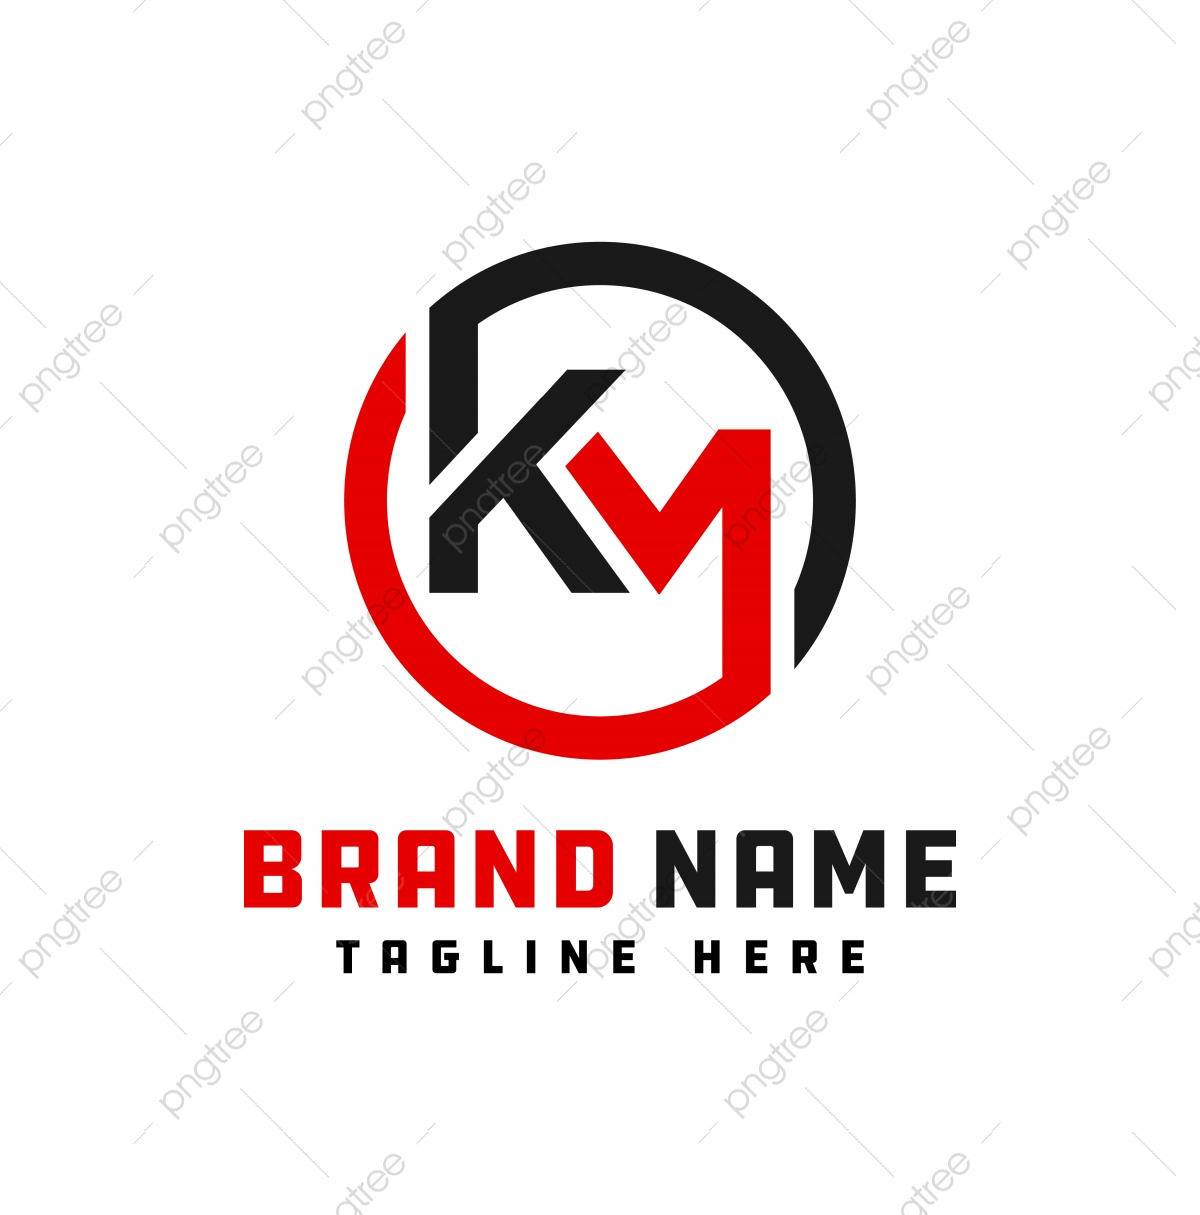 Monogram Logo Design Letter Km Template For Free Download On Pngtree